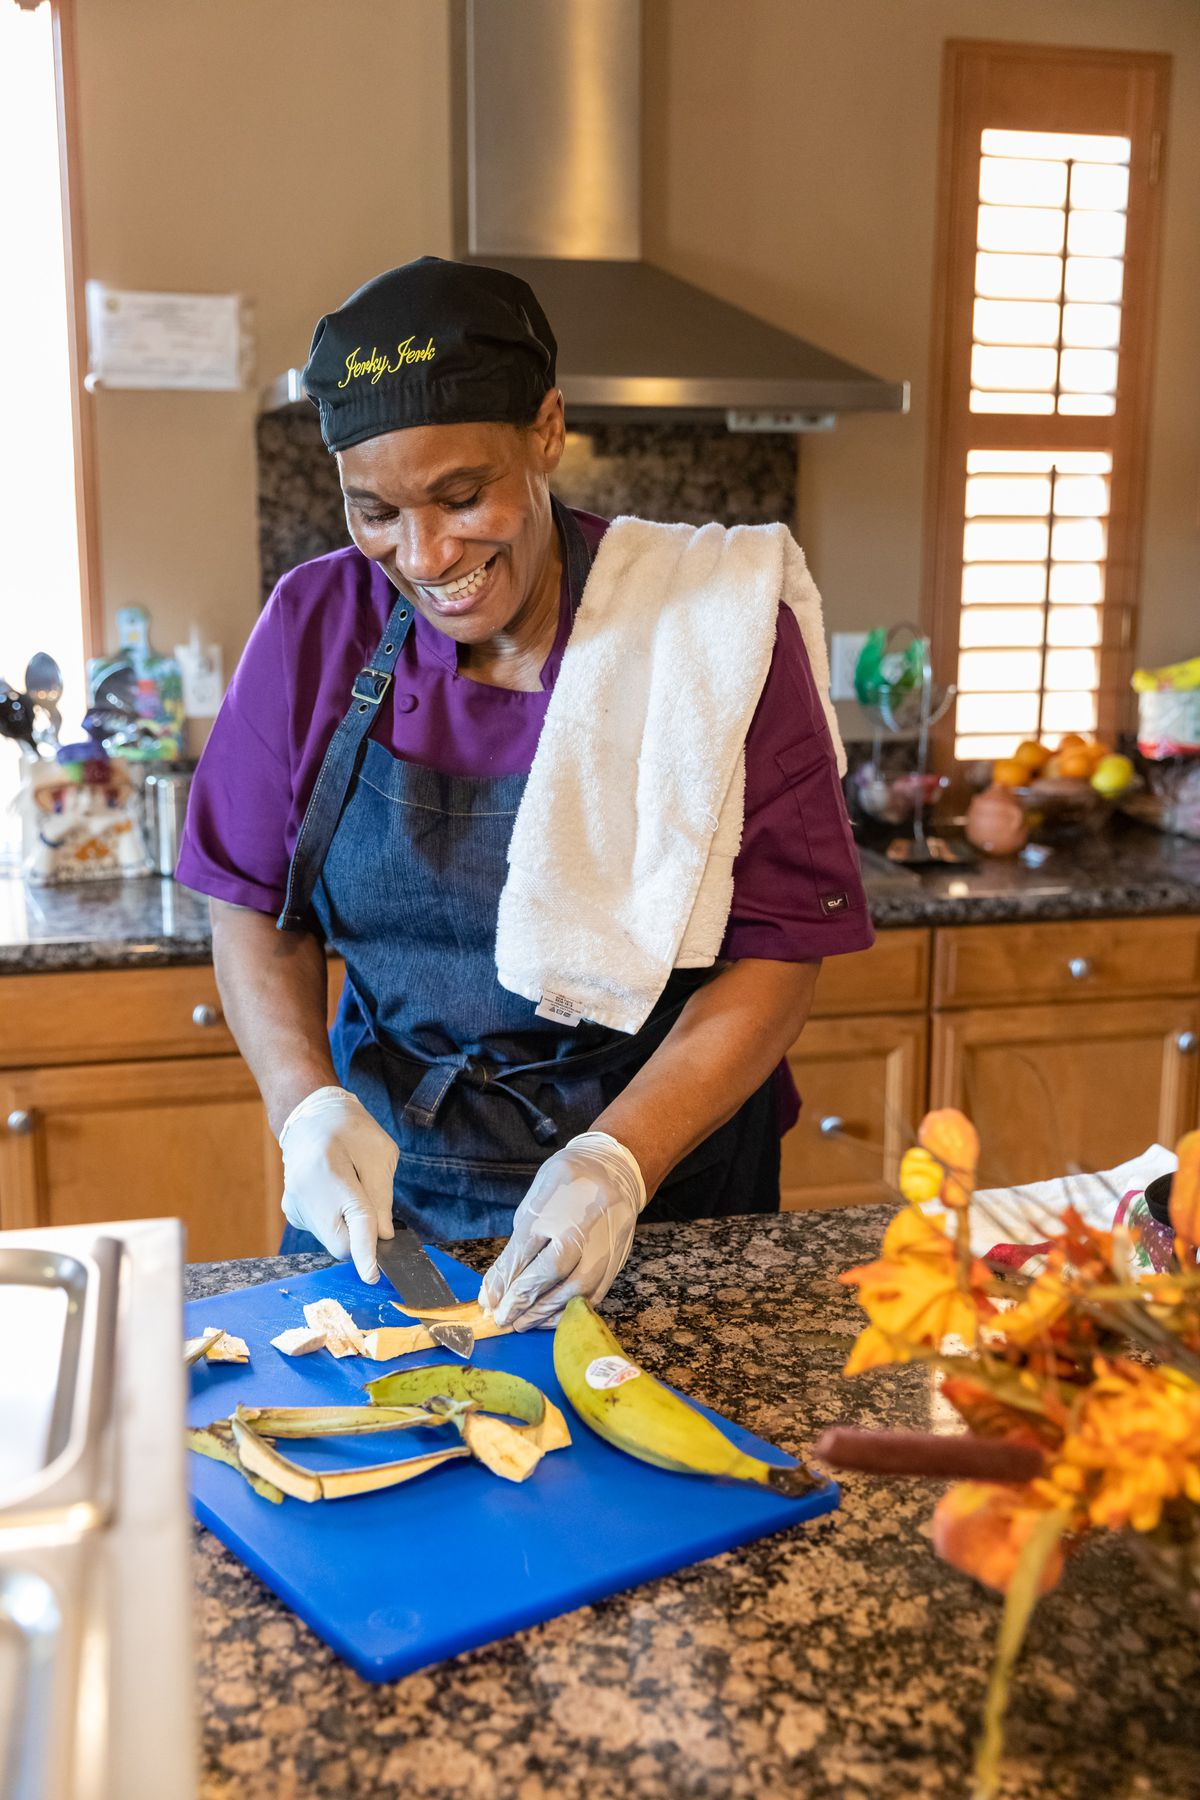 Evon McMurray slices plantains at her home kitchen restaurant Jerky Jerk with a blue cutting board and granite countertops.